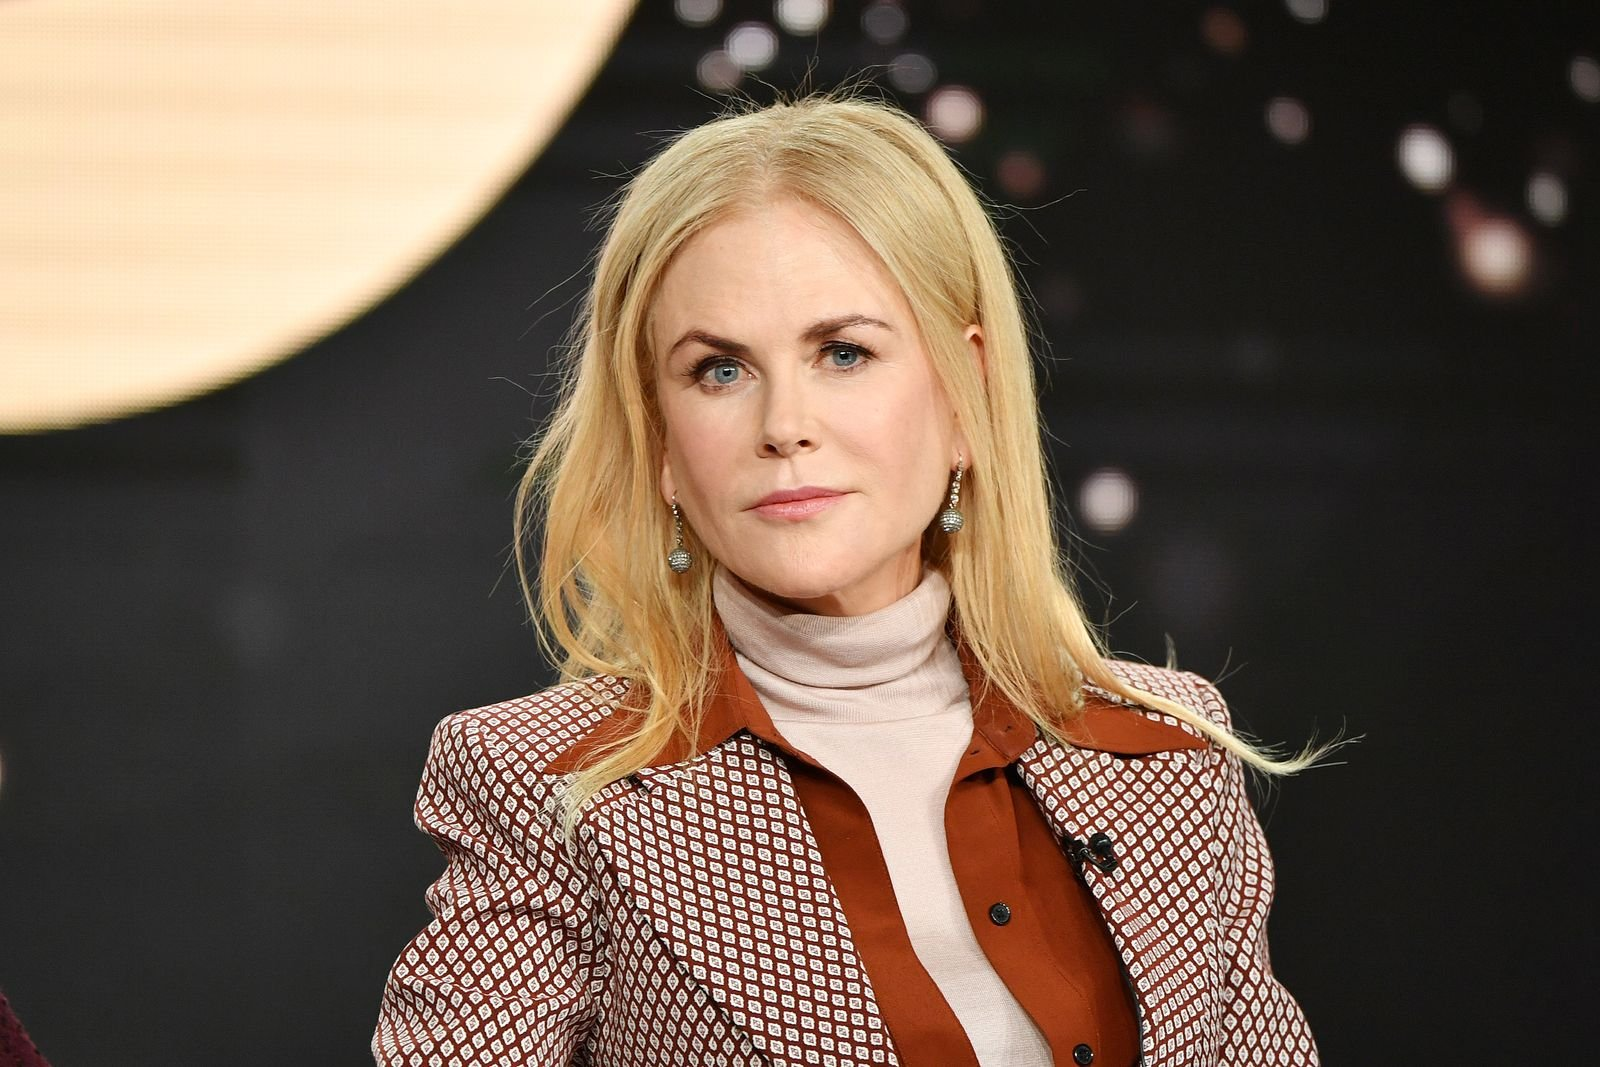 Nicole Kidman at the HBO segment of the 2020 Winter TCA Press Tour at The Langham Huntington, Pasadena on January 15, 2020 | Getty Images